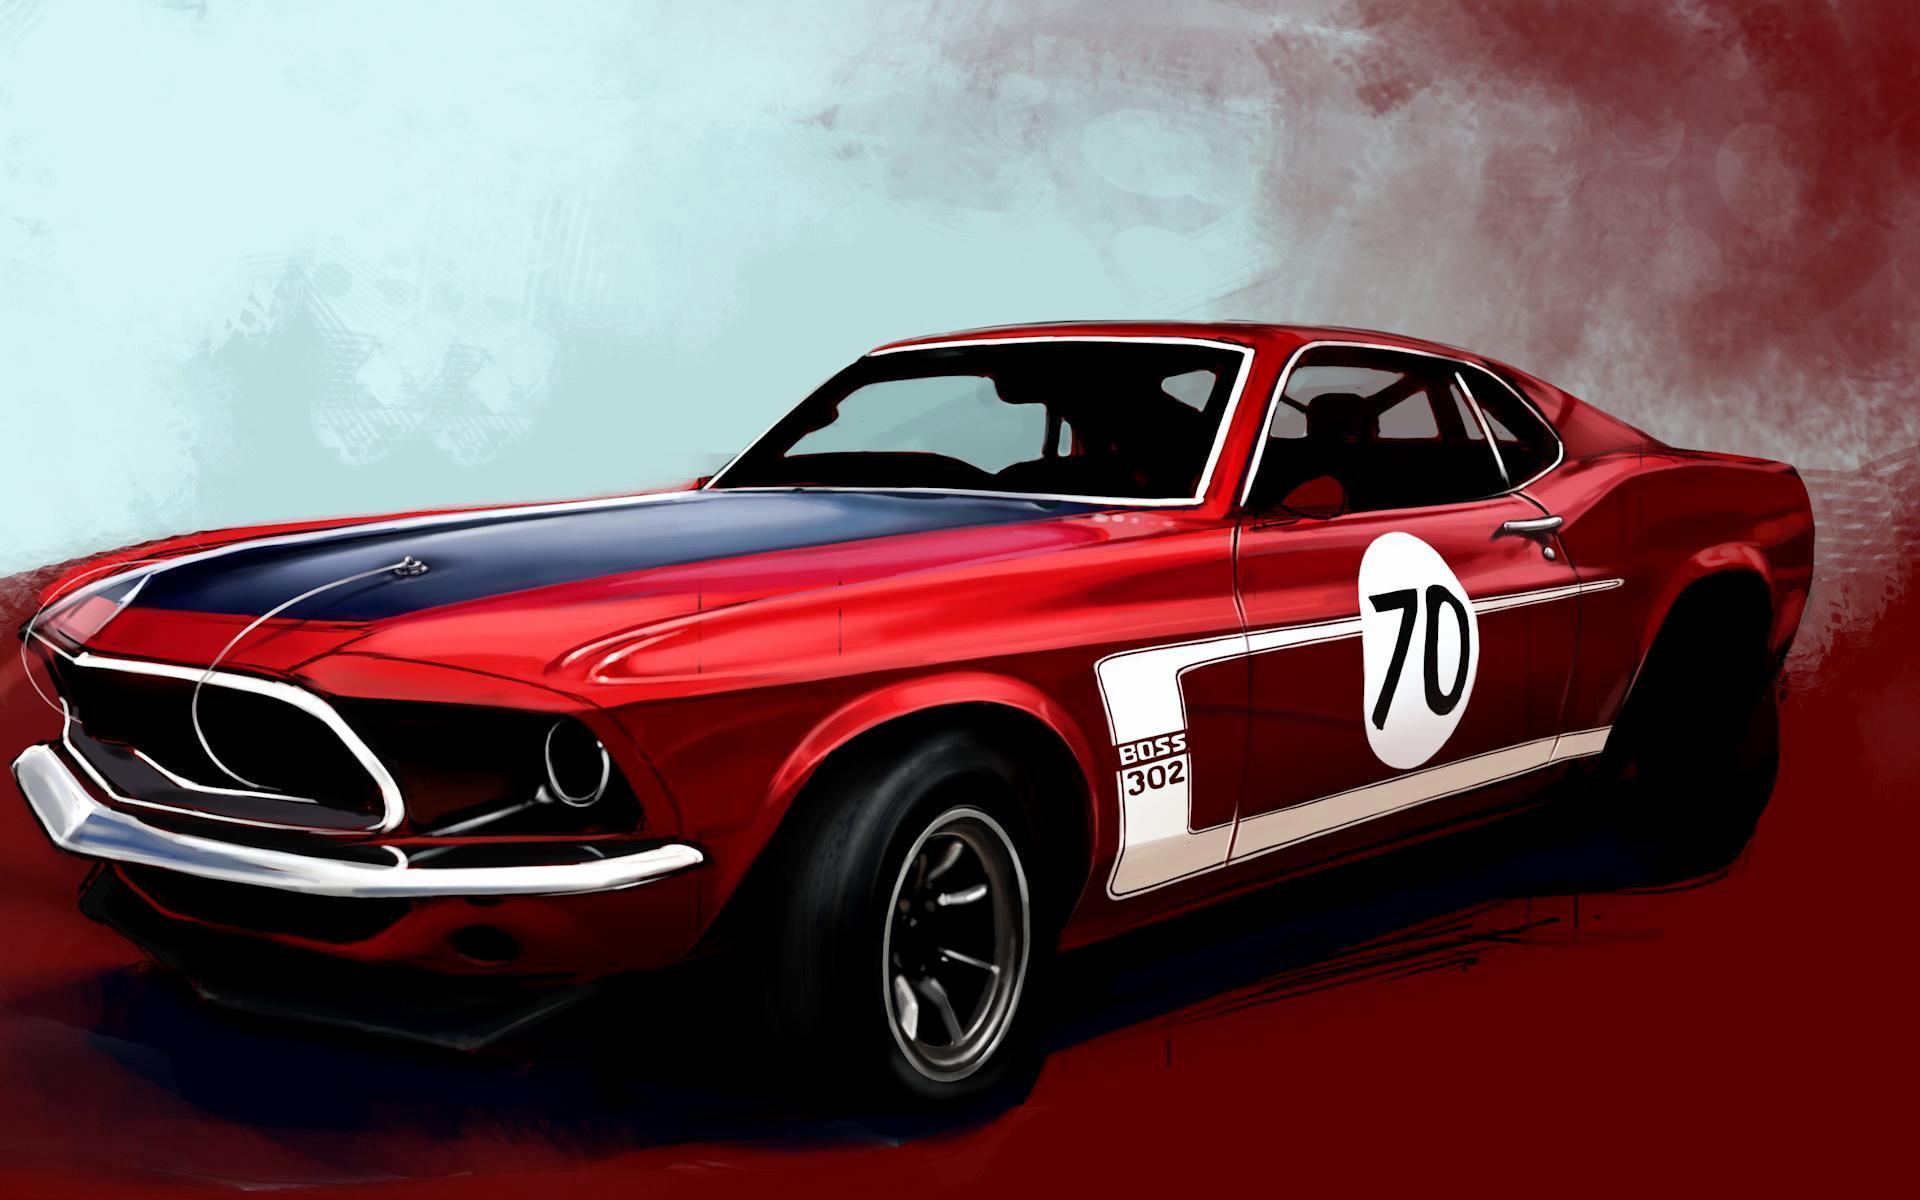 1920x1200 Muscle Car Wallpaper New Muscle Car Res 2048×1152 Size511kb Views 97303  Images Of American